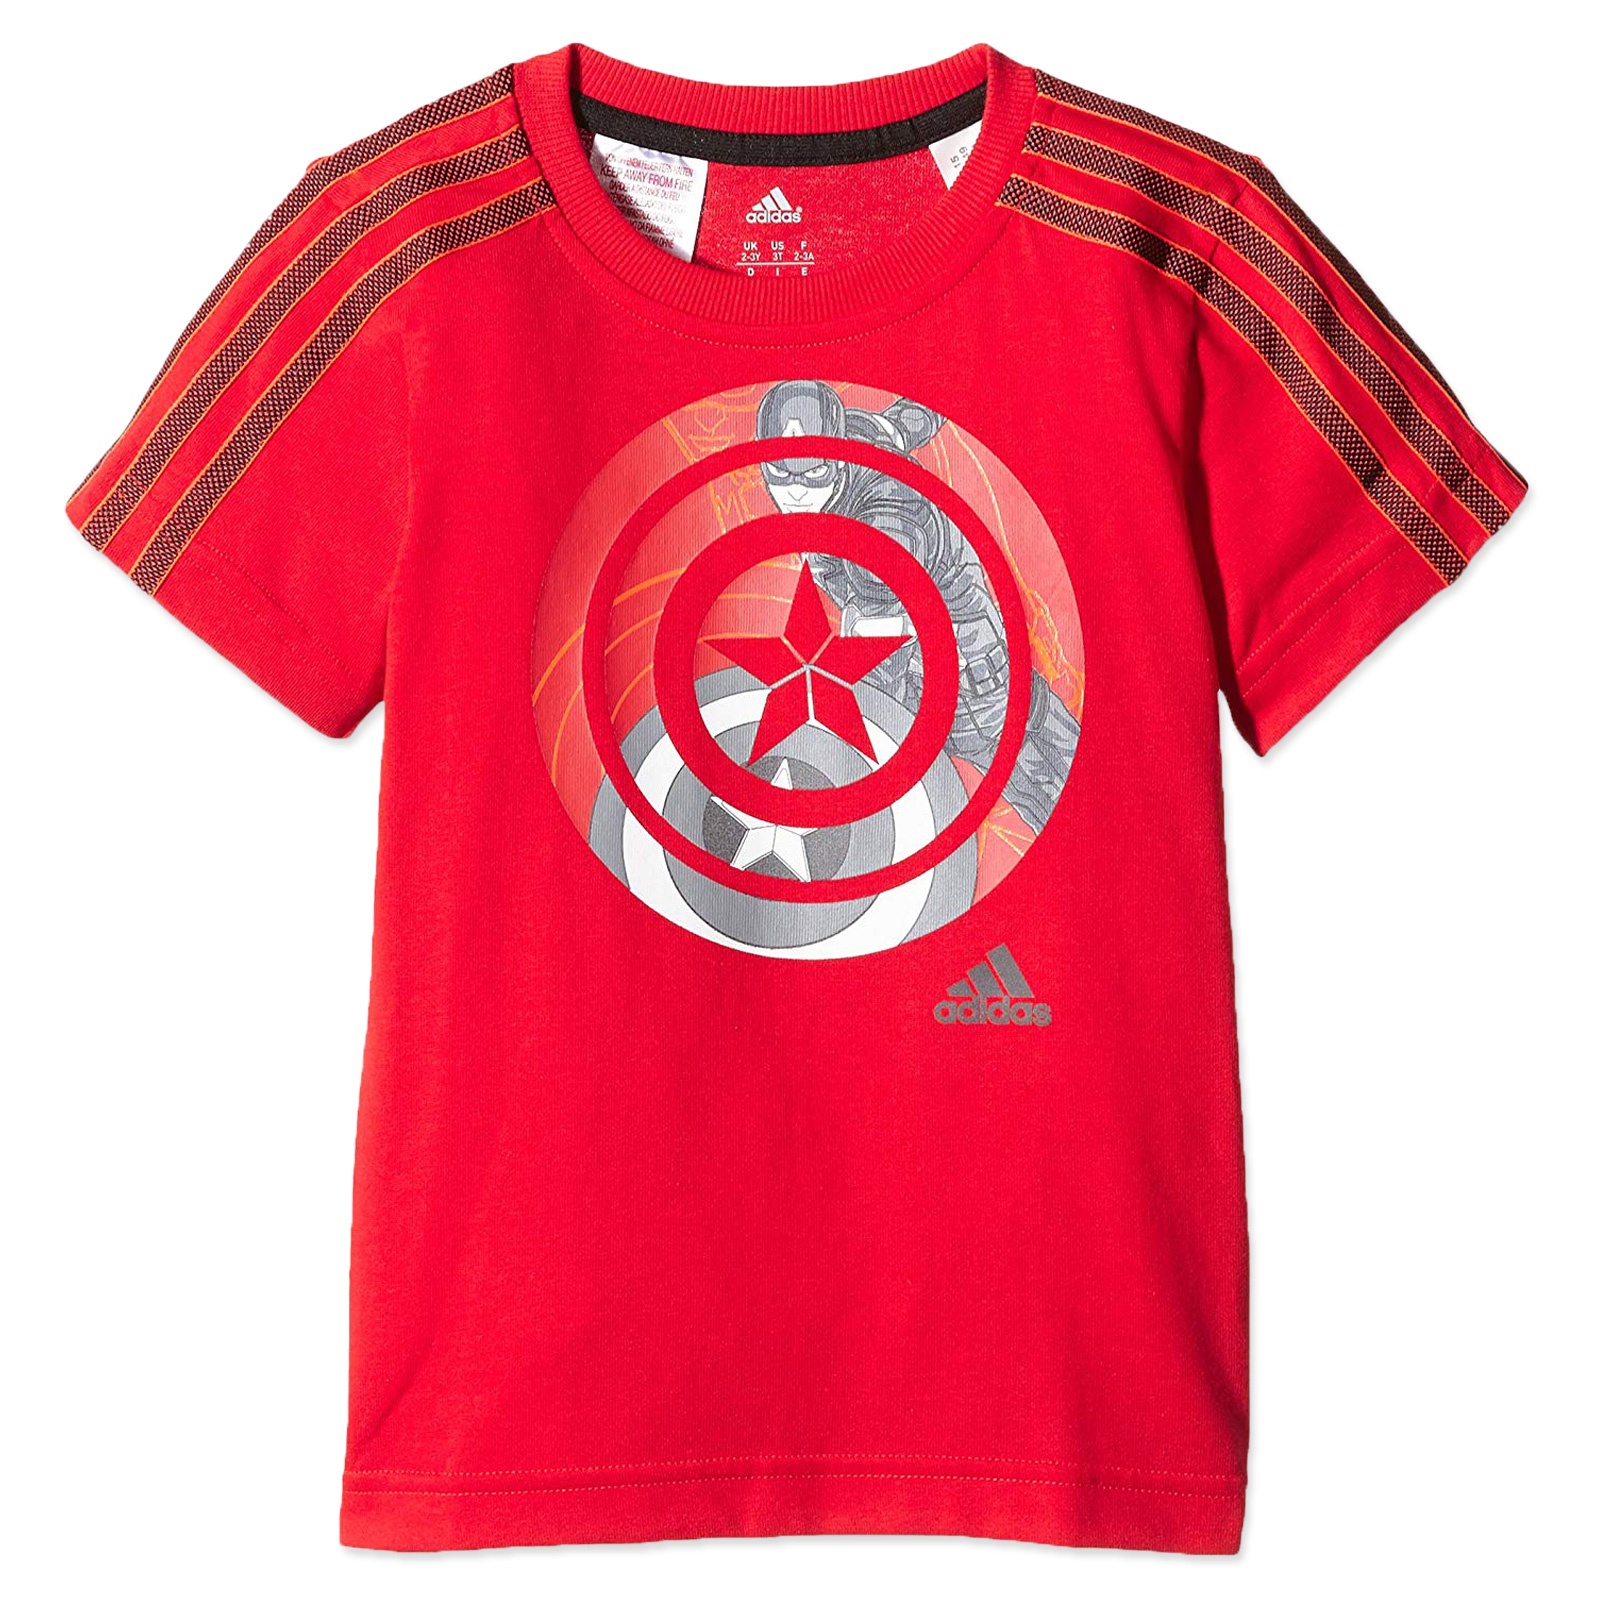 Kids Red Adidas Avenger Tee About X Captain Details Boys Marvel America Shirt Ab5049 T WEDIH9Y2